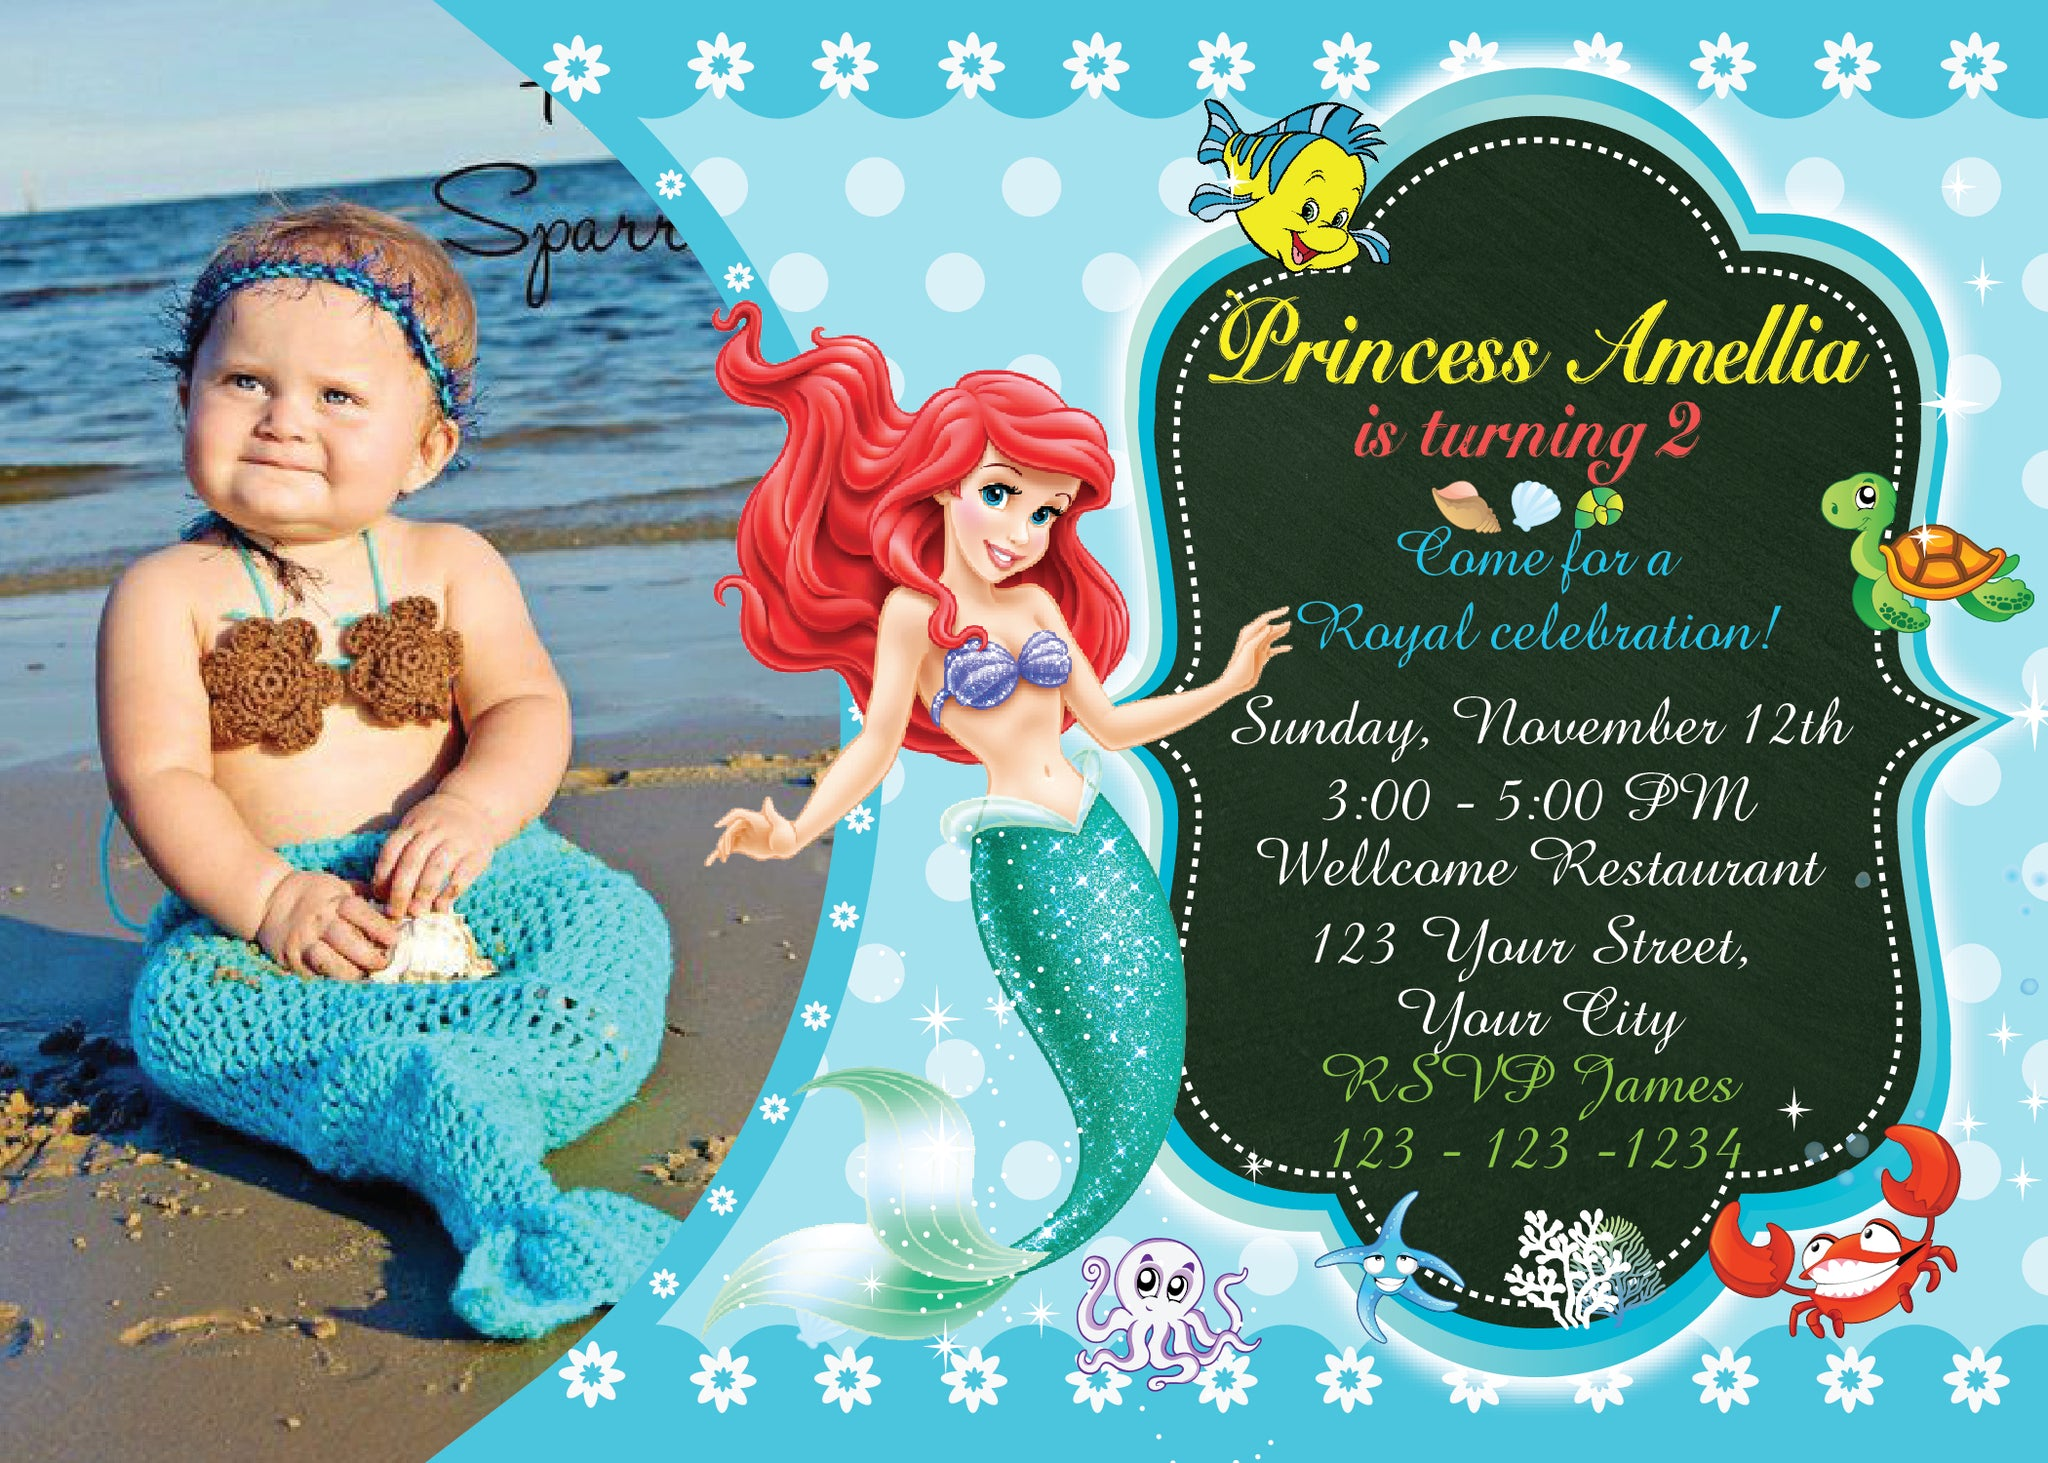 Little Mermaid InvitationAriel Birthday InvitationsLittle BirthdayAriel InvitationBirthday